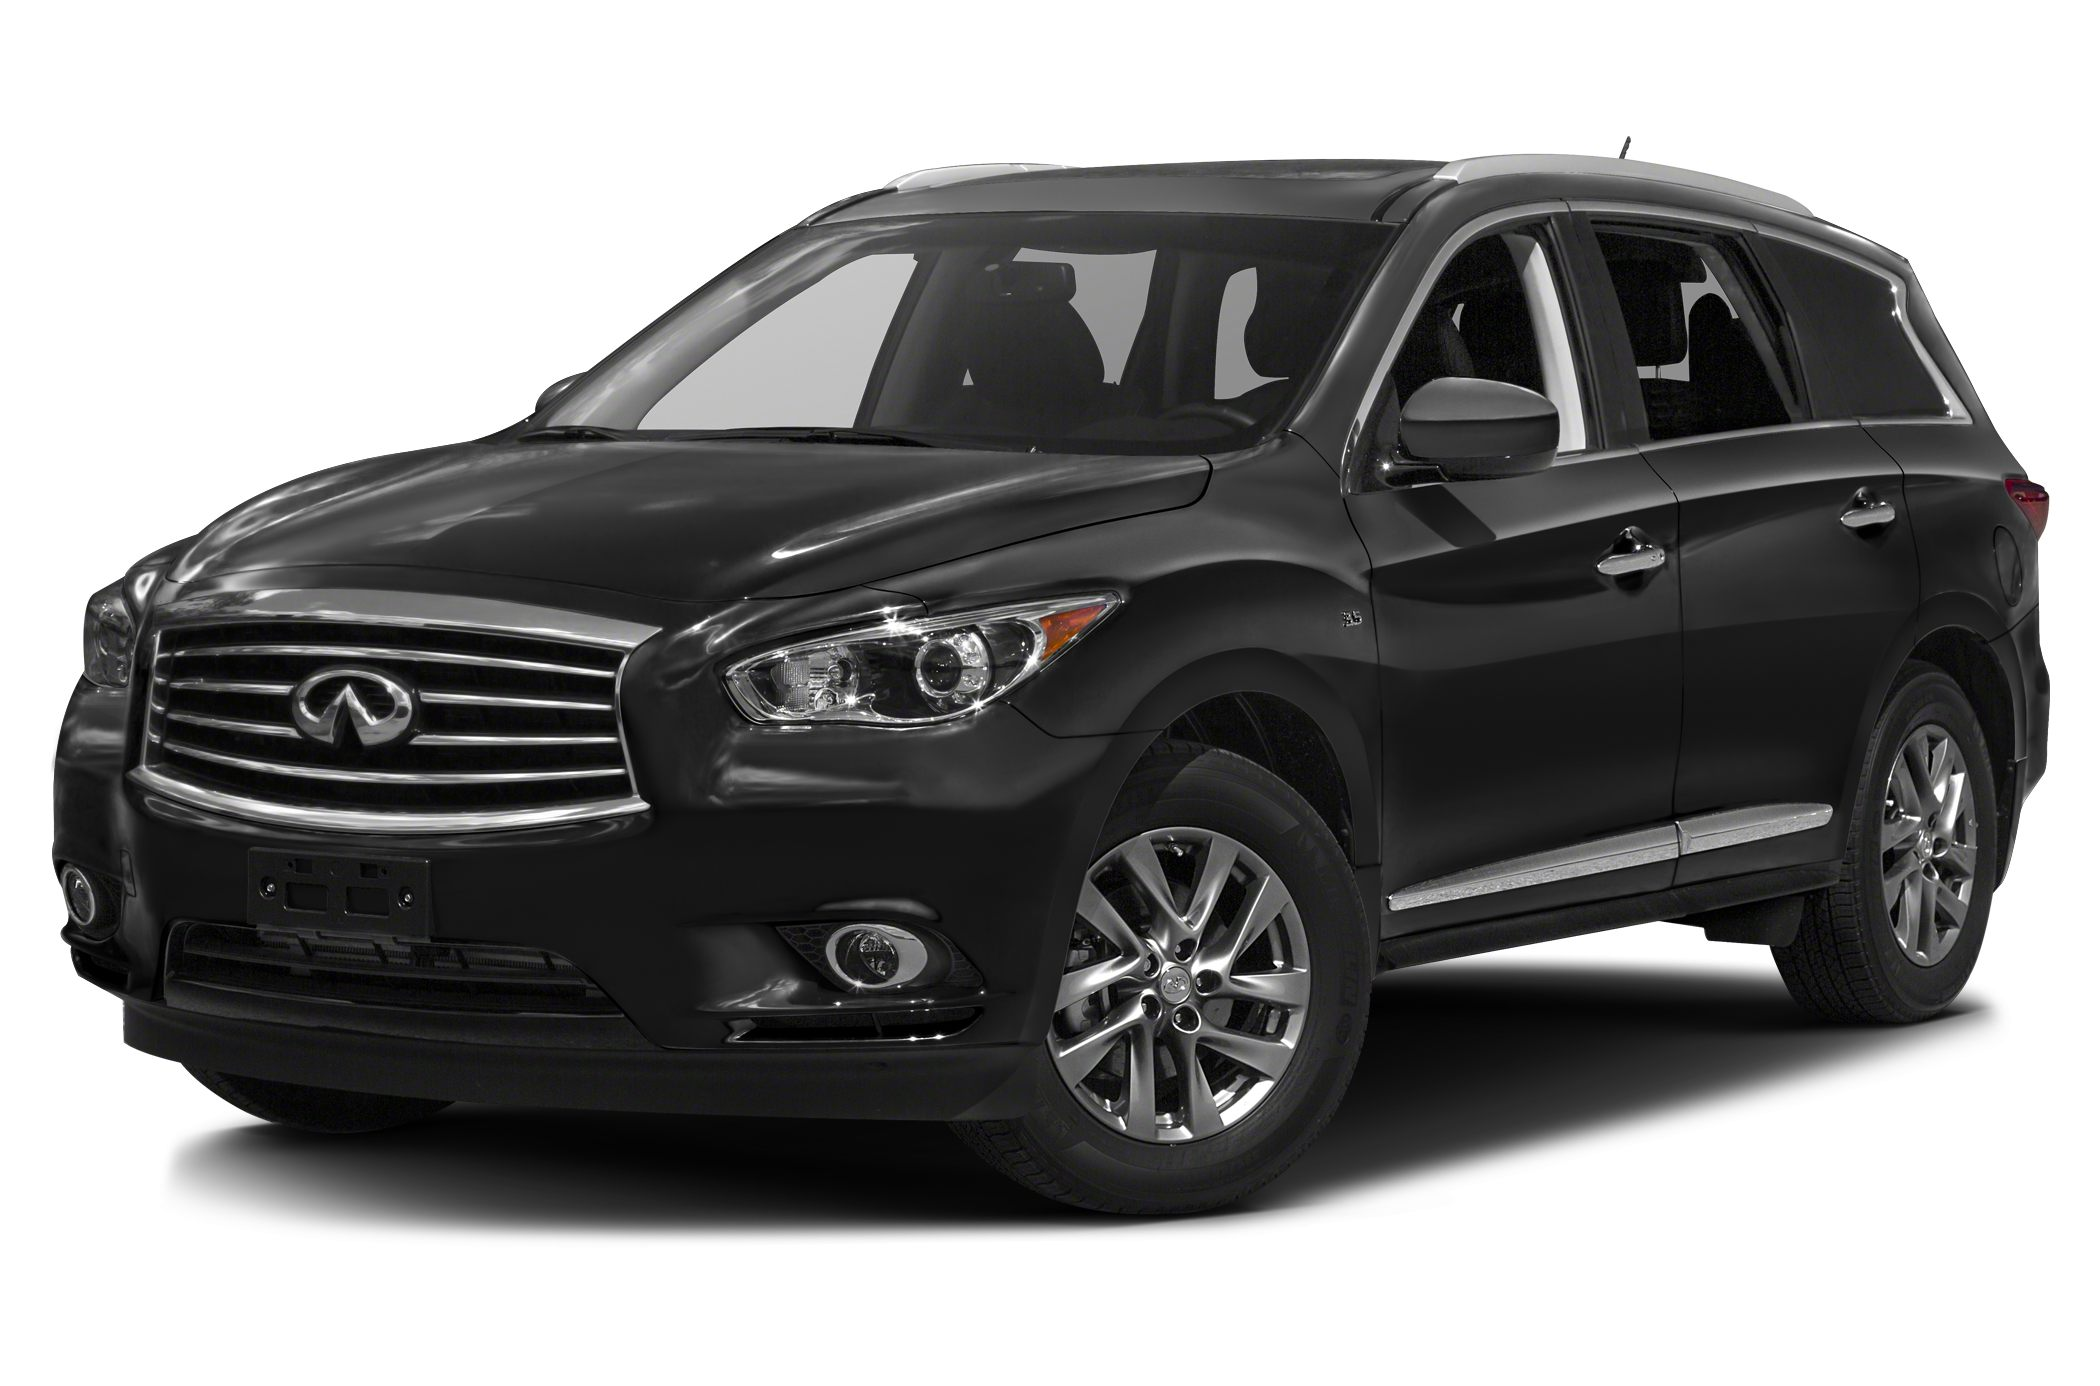 2017 Infiniti Qx60 Pricing And Specs